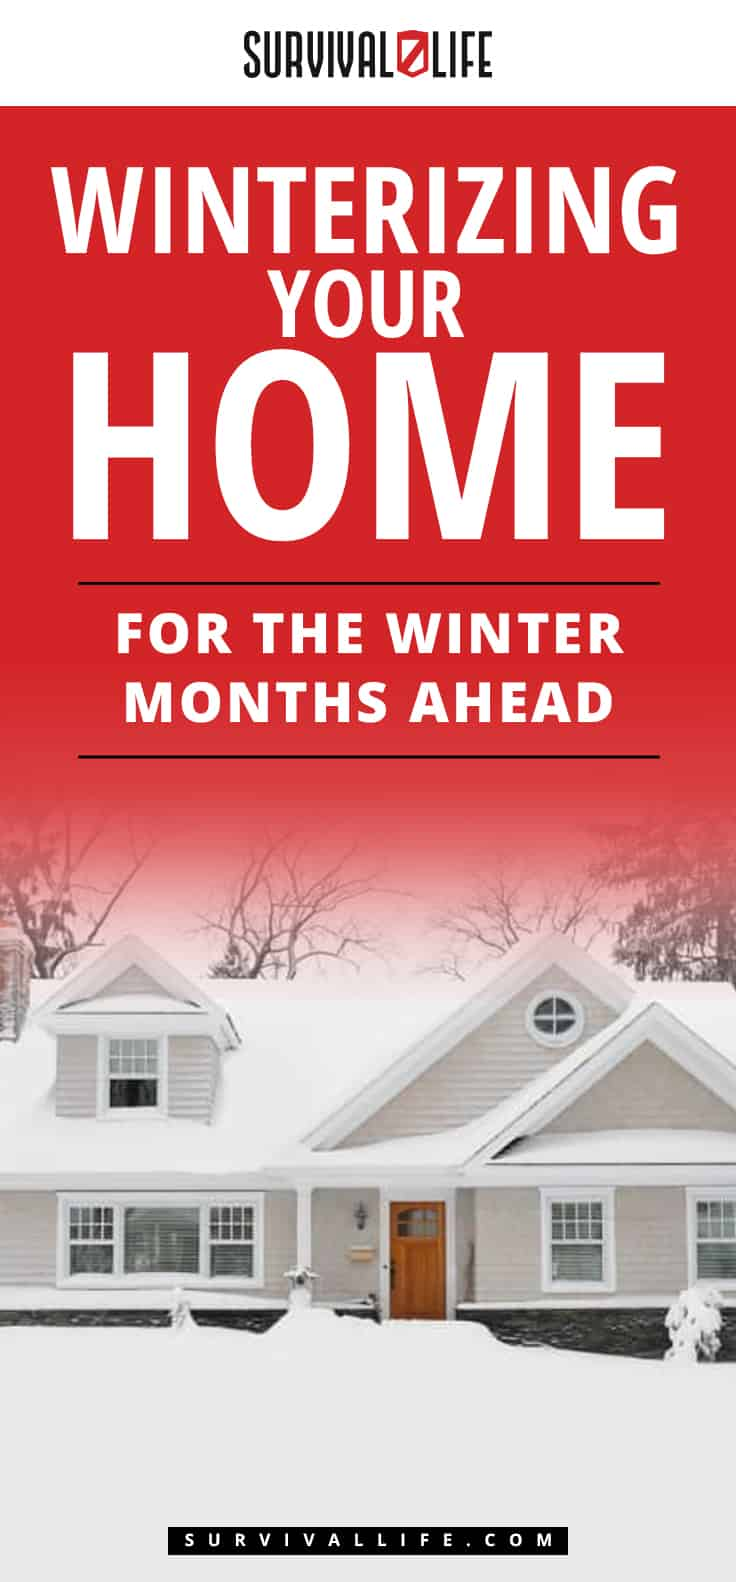 Winterizing your Home for the Winter Months Ahead